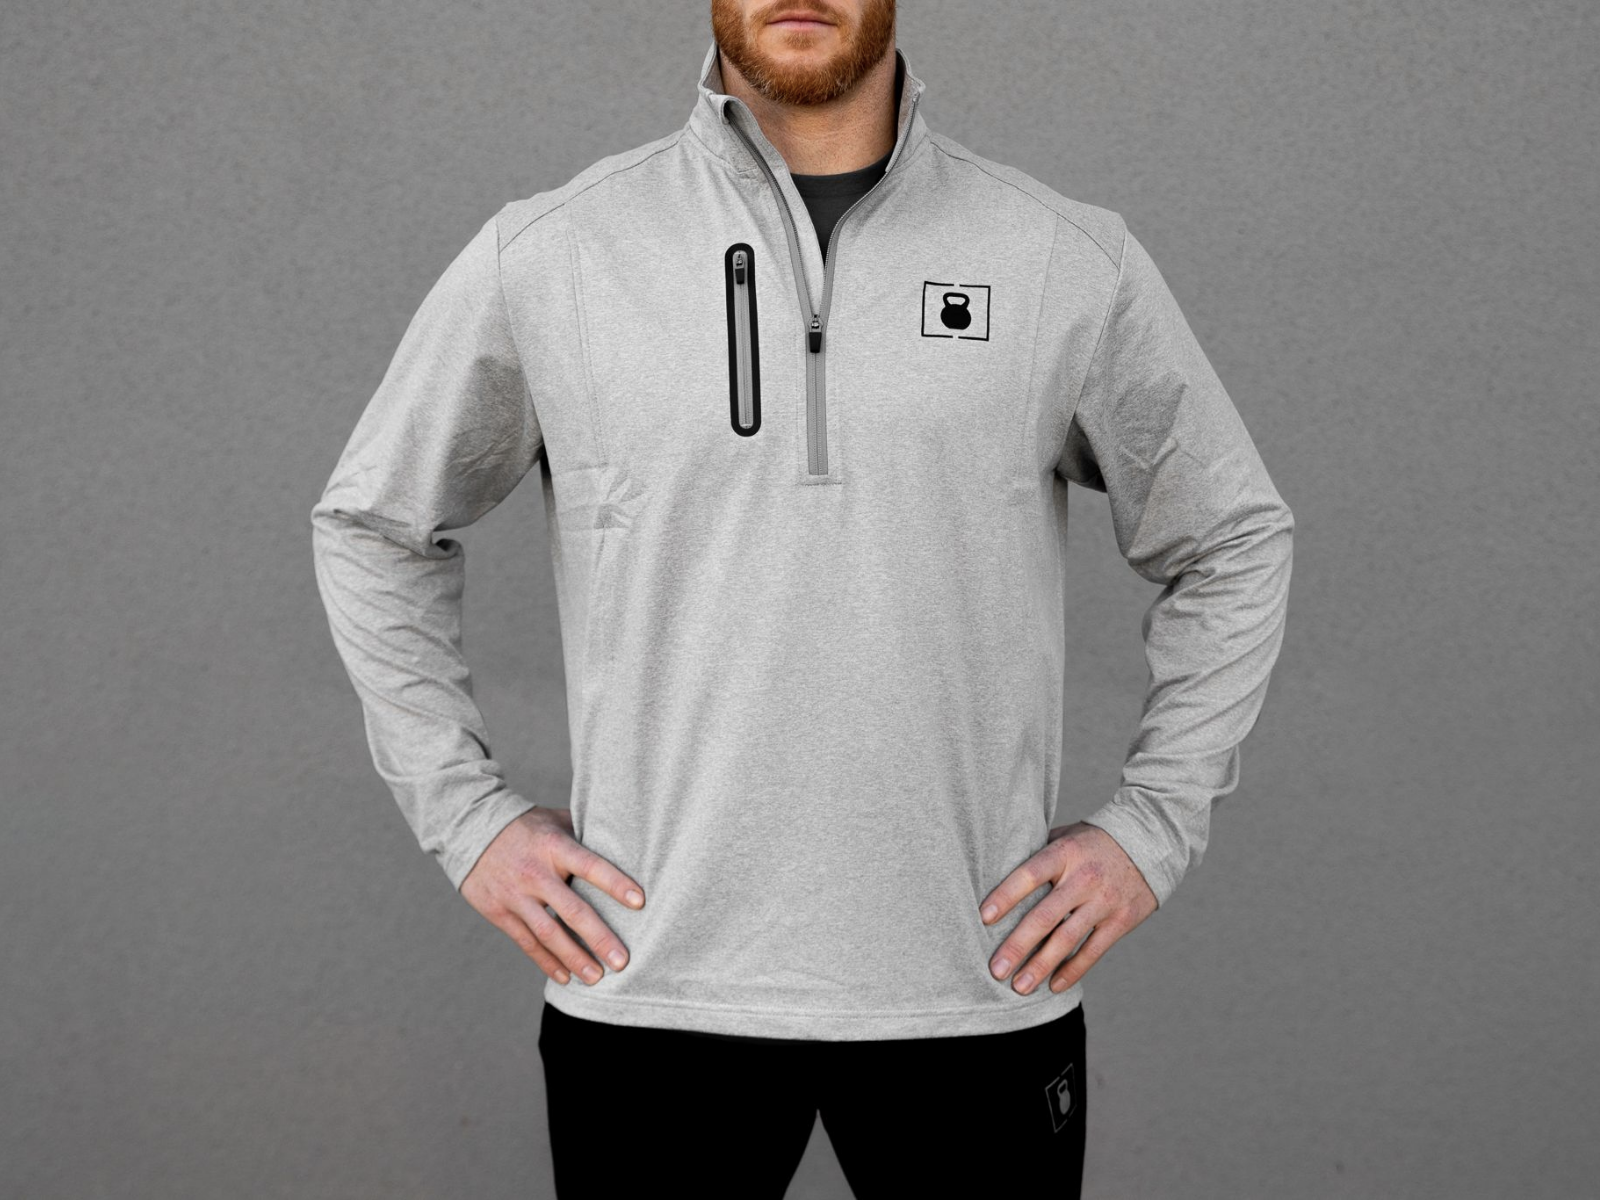 Steel White Performance Half Zip - 2POOD